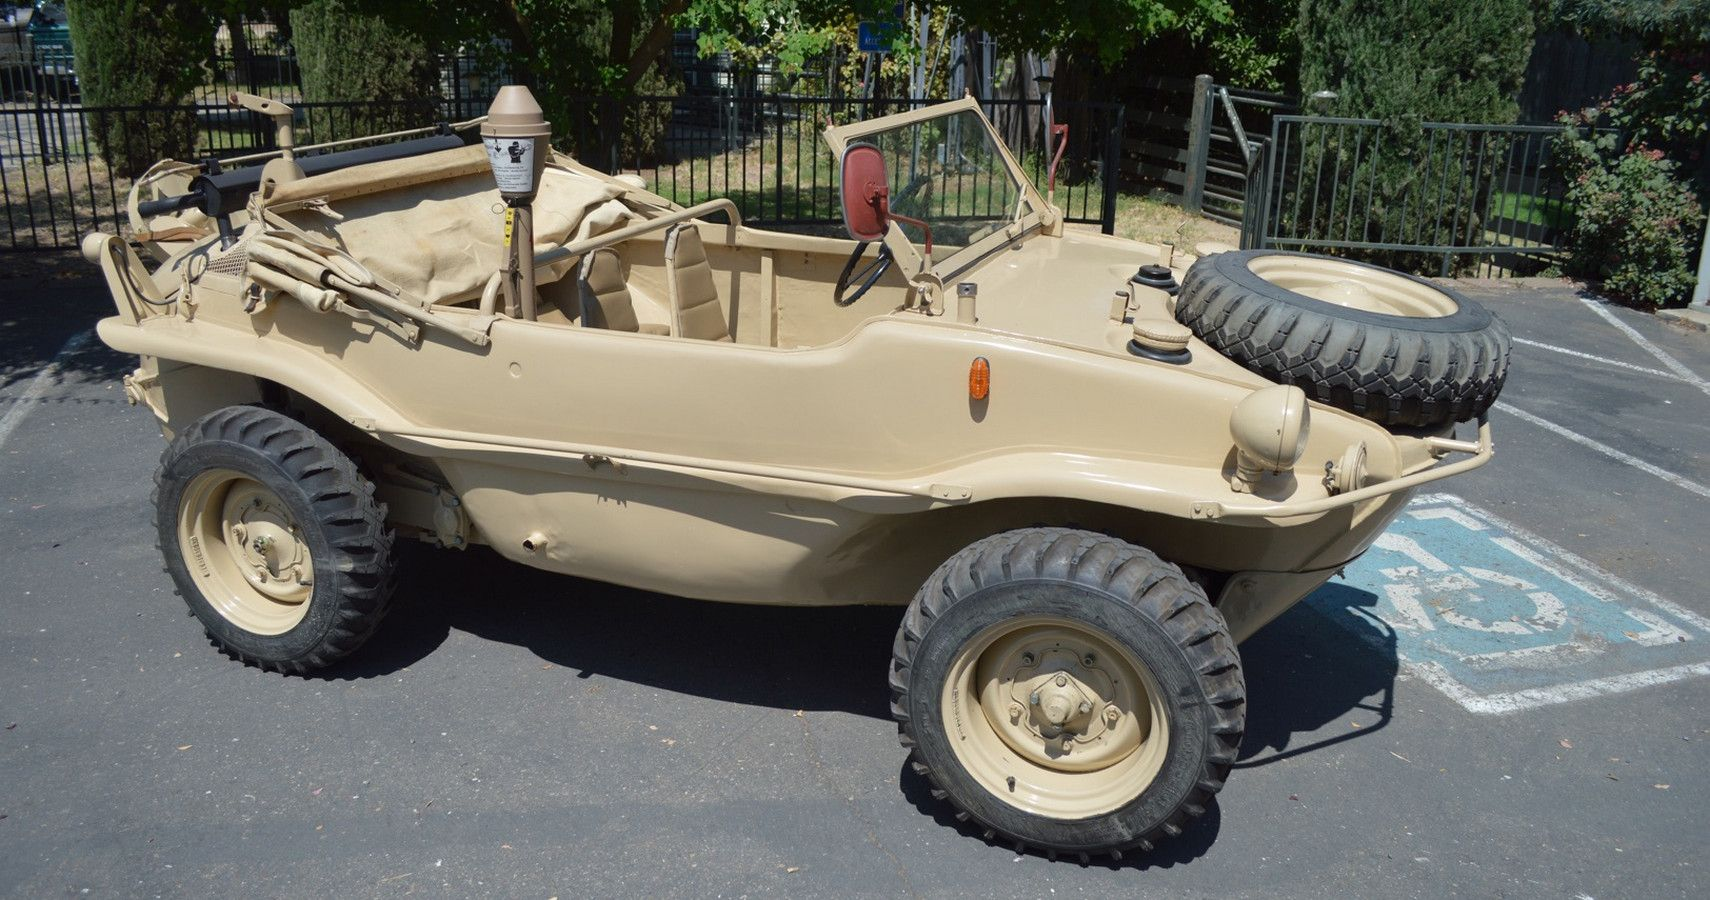 10 Weird And Wonderful Cars That Could Also Be Used As Boats